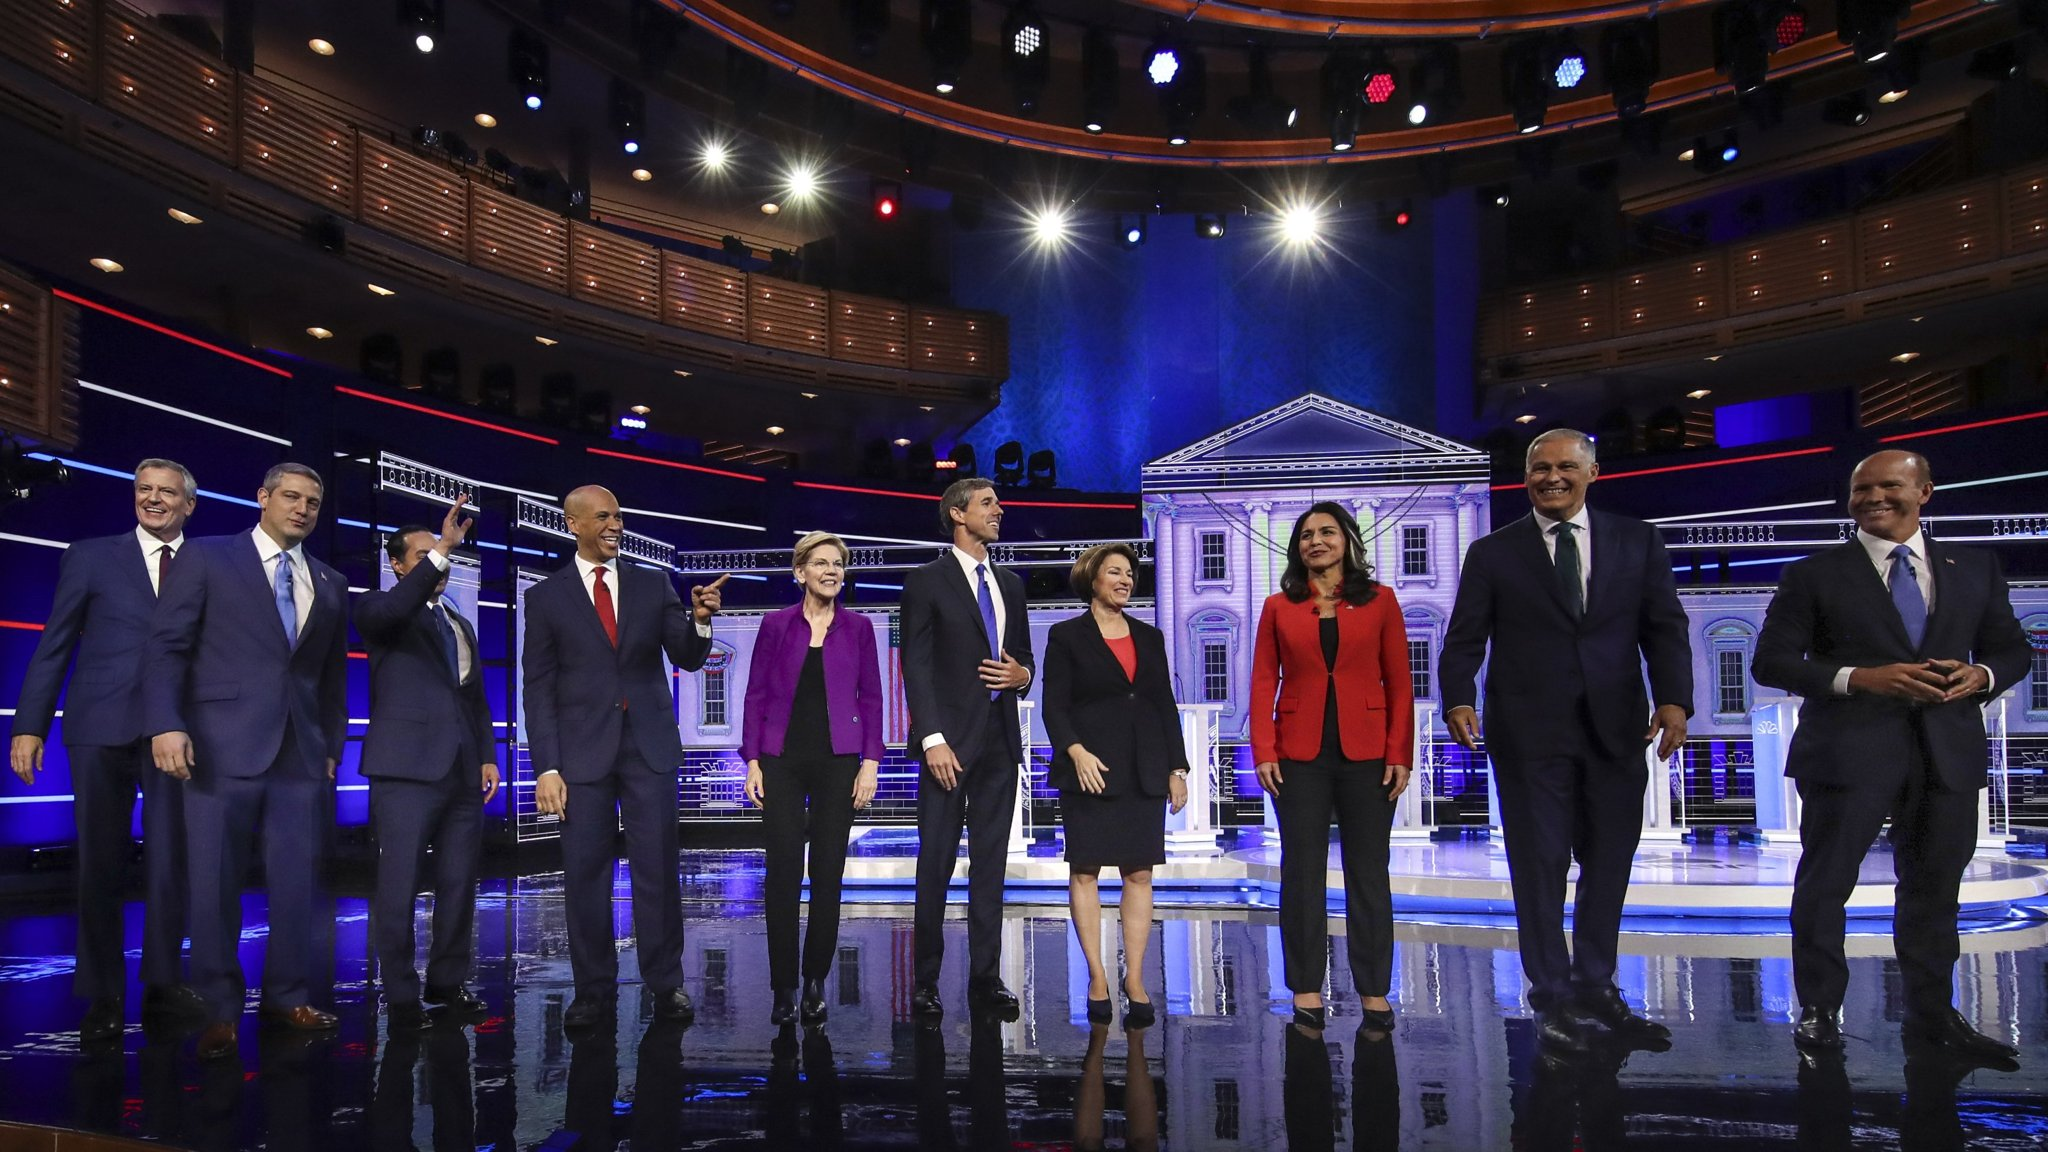 Democratic contenders spar over healthcare and migration